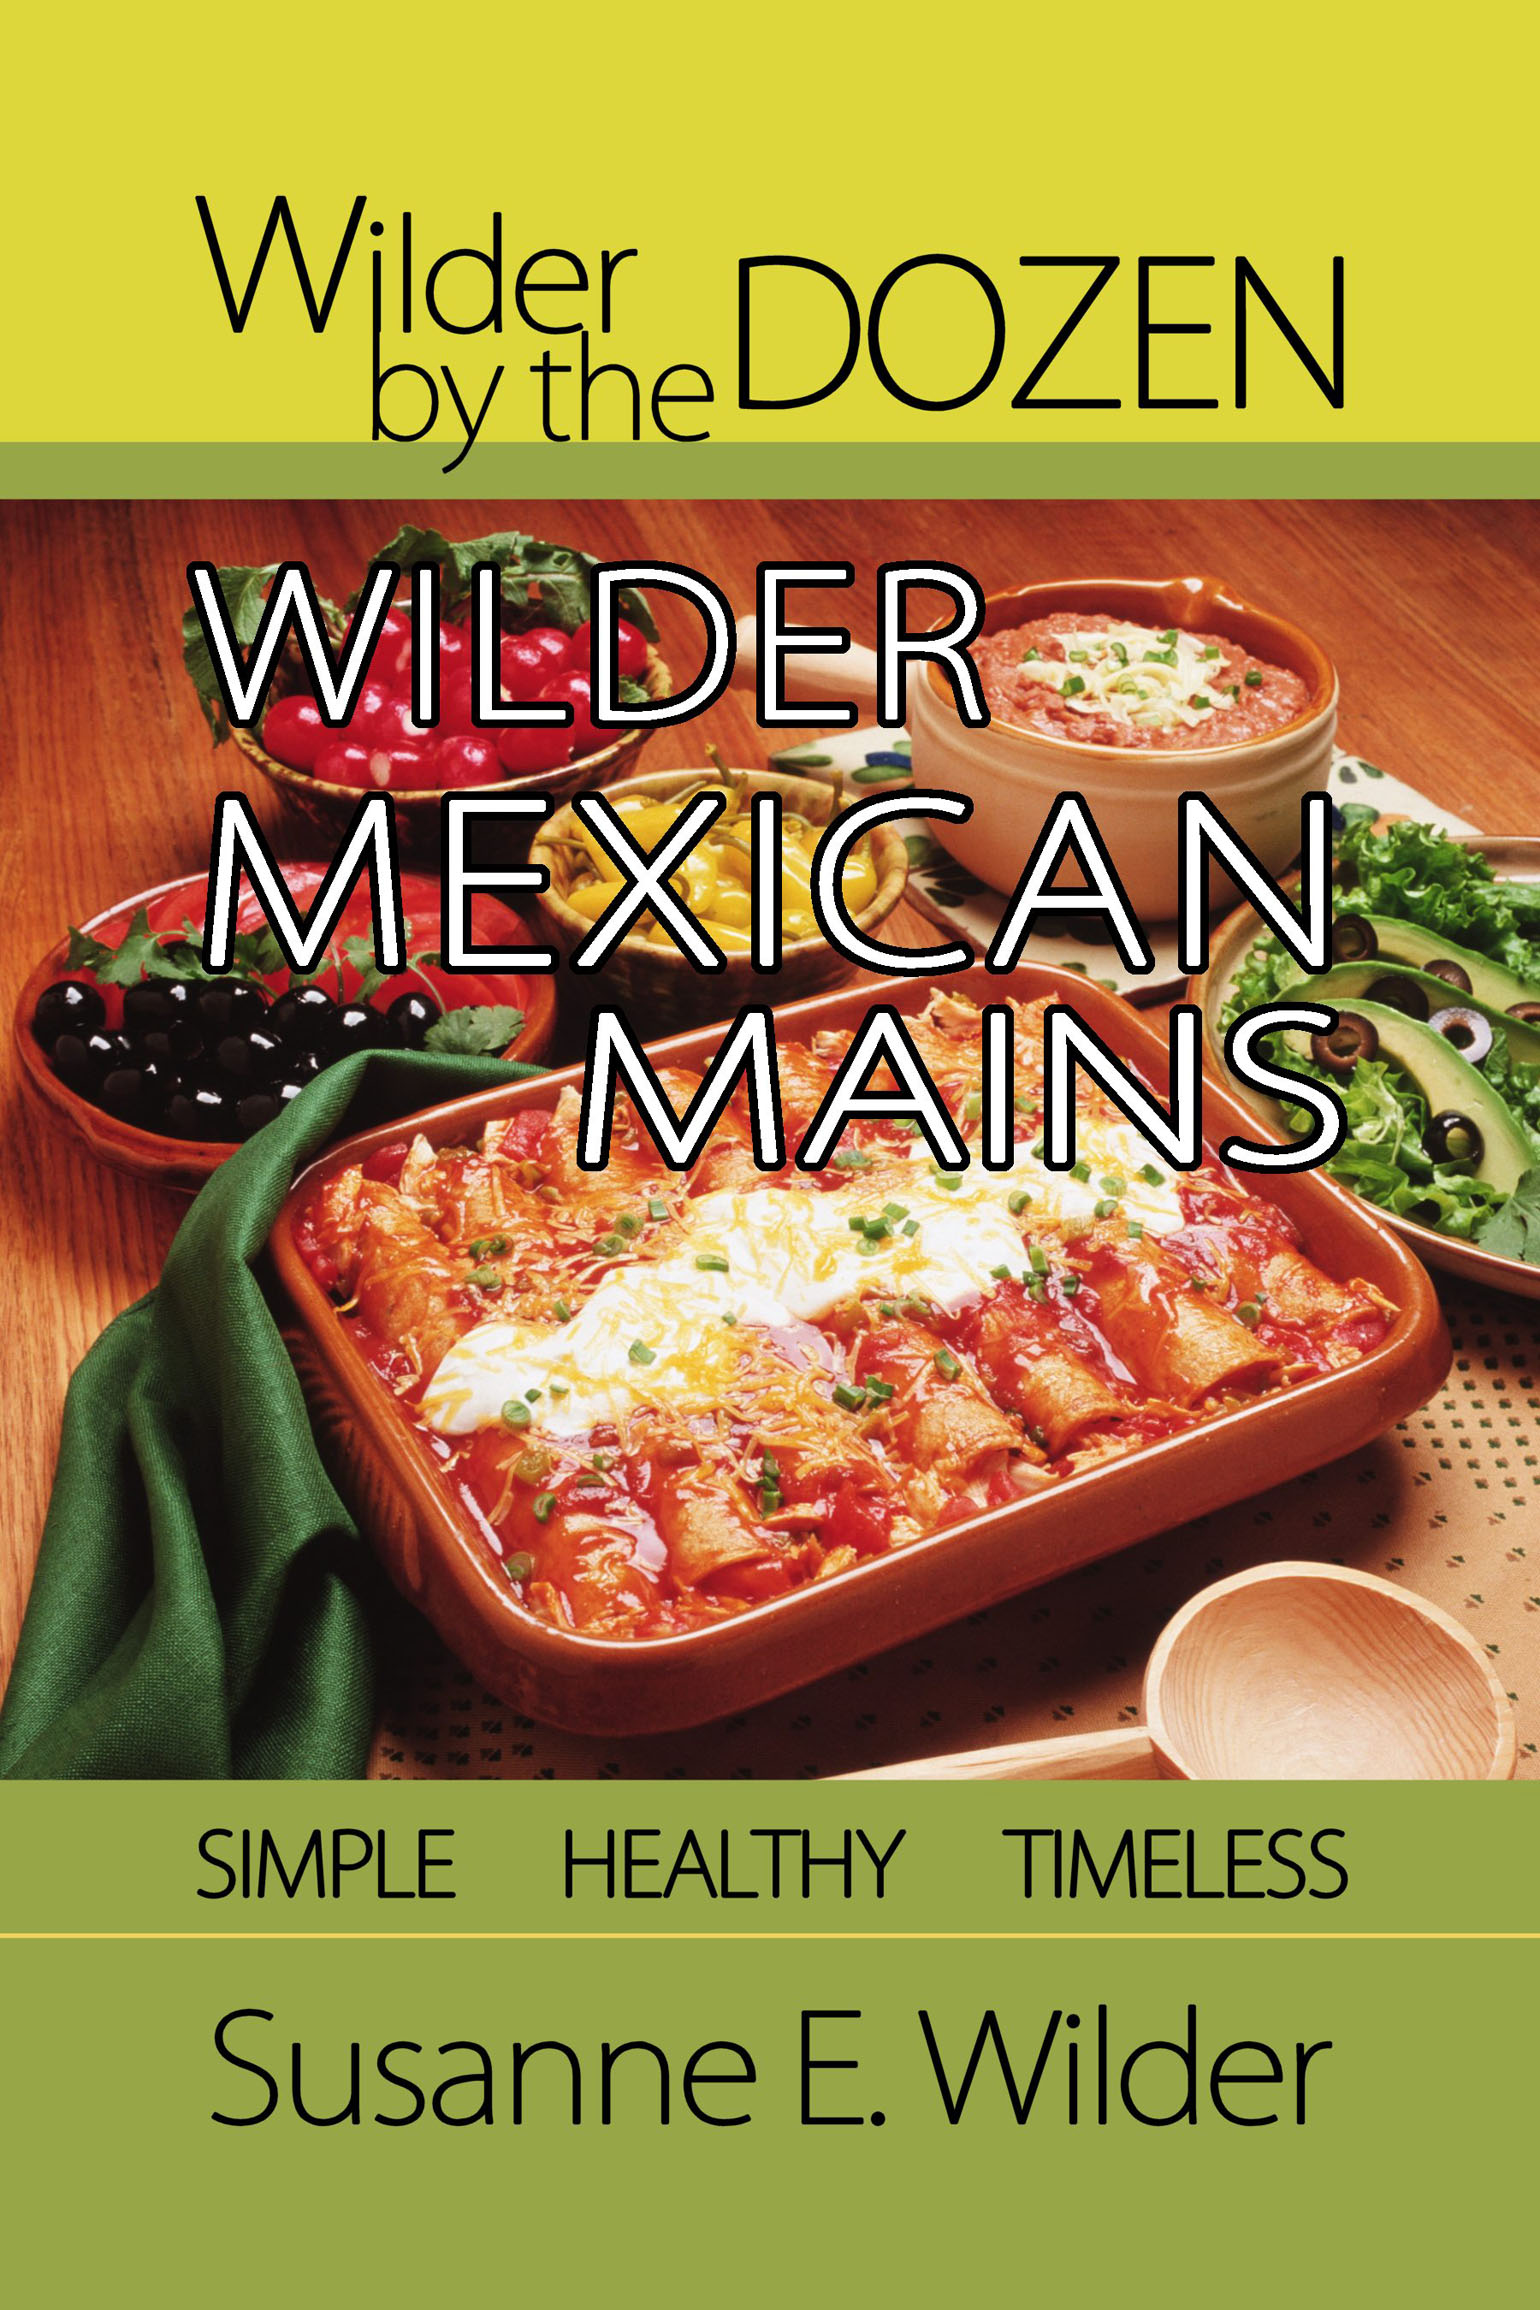 Wilder mexican mains